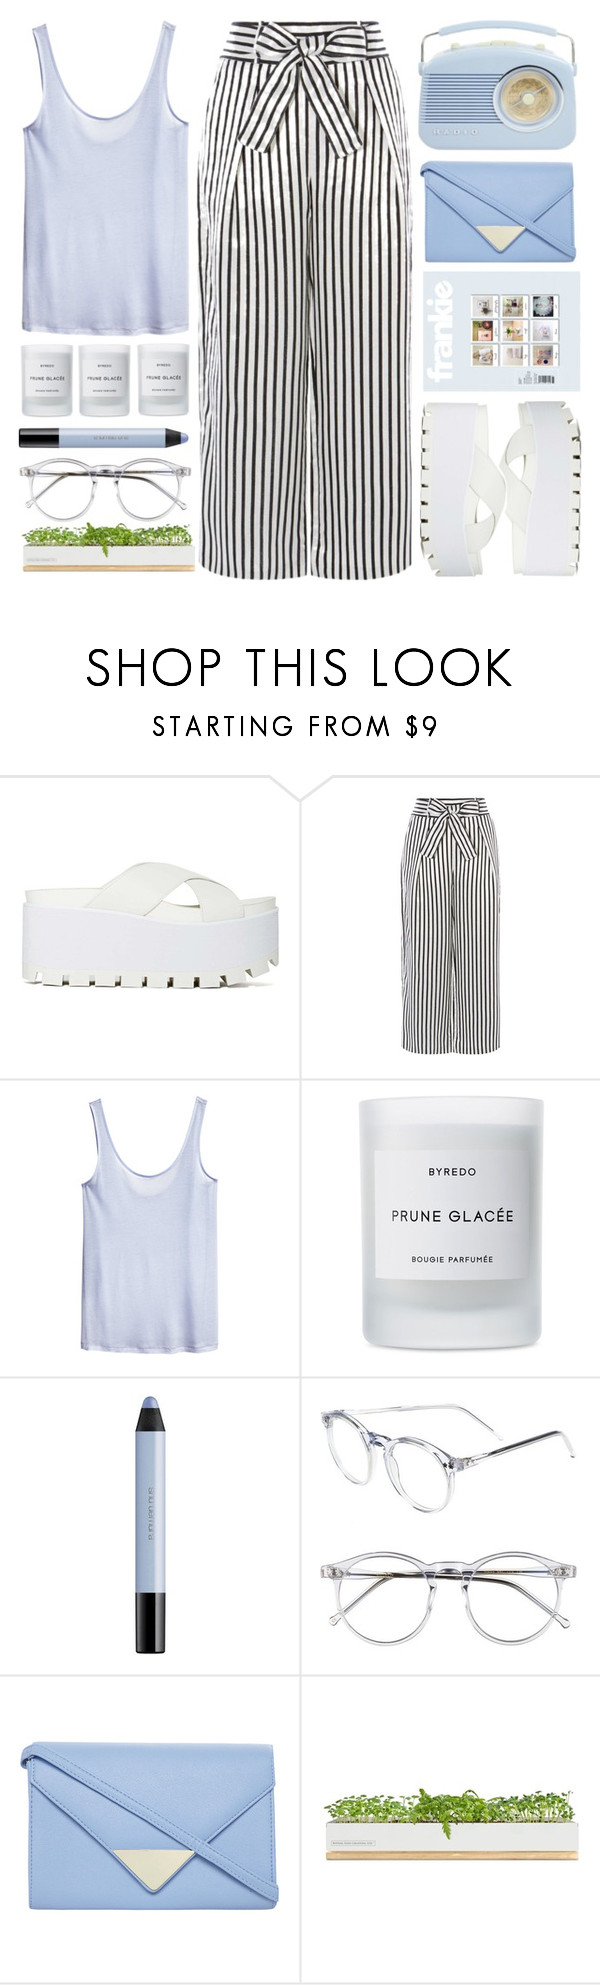 """Blues"" by chantellehofland ❤ liked on Polyvore featuring Y.R.U., Karen Millen, H&M, Byredo, shu uemura, Wildfox, Dorothy Perkins and Bambeco"